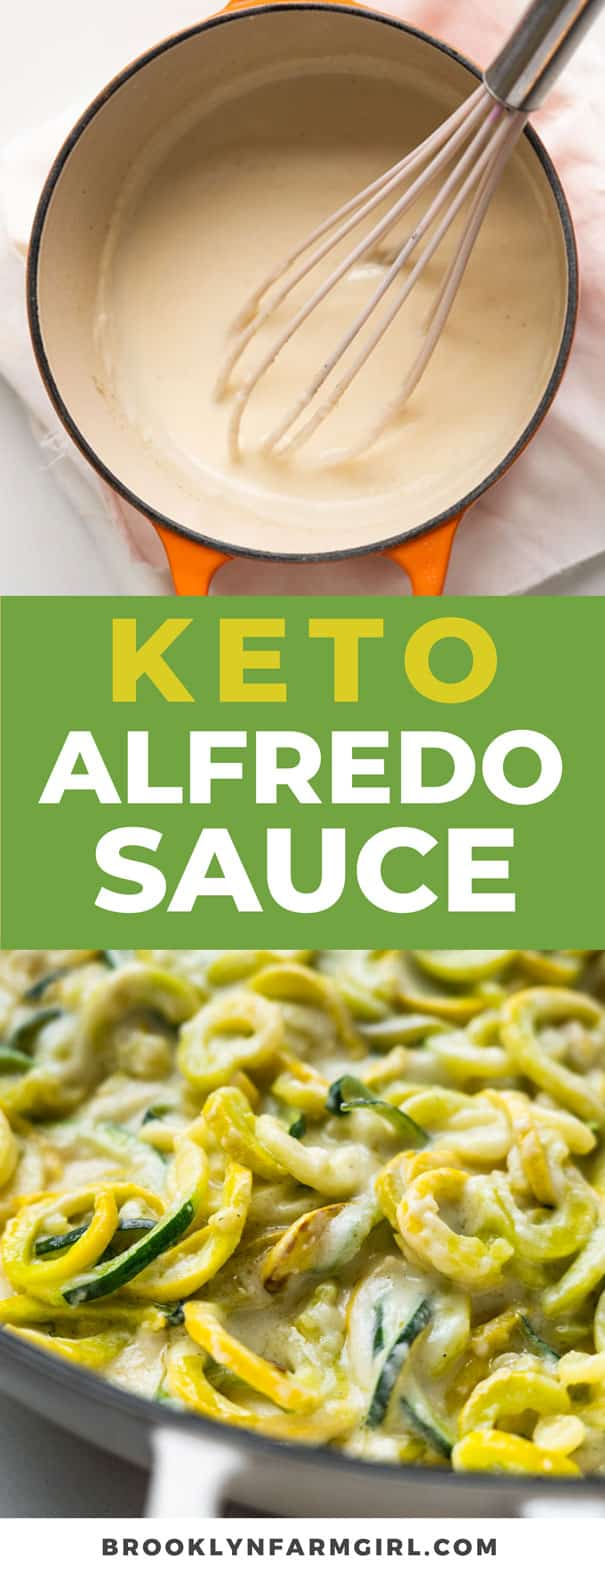 Easy to make Keto Alfredo Sauce that's ready in 10 minutes.  You're going to love this low carb recipe to serve over zoodles! Made with heavy cream, broth, cream cheese and Parmesan cheese.